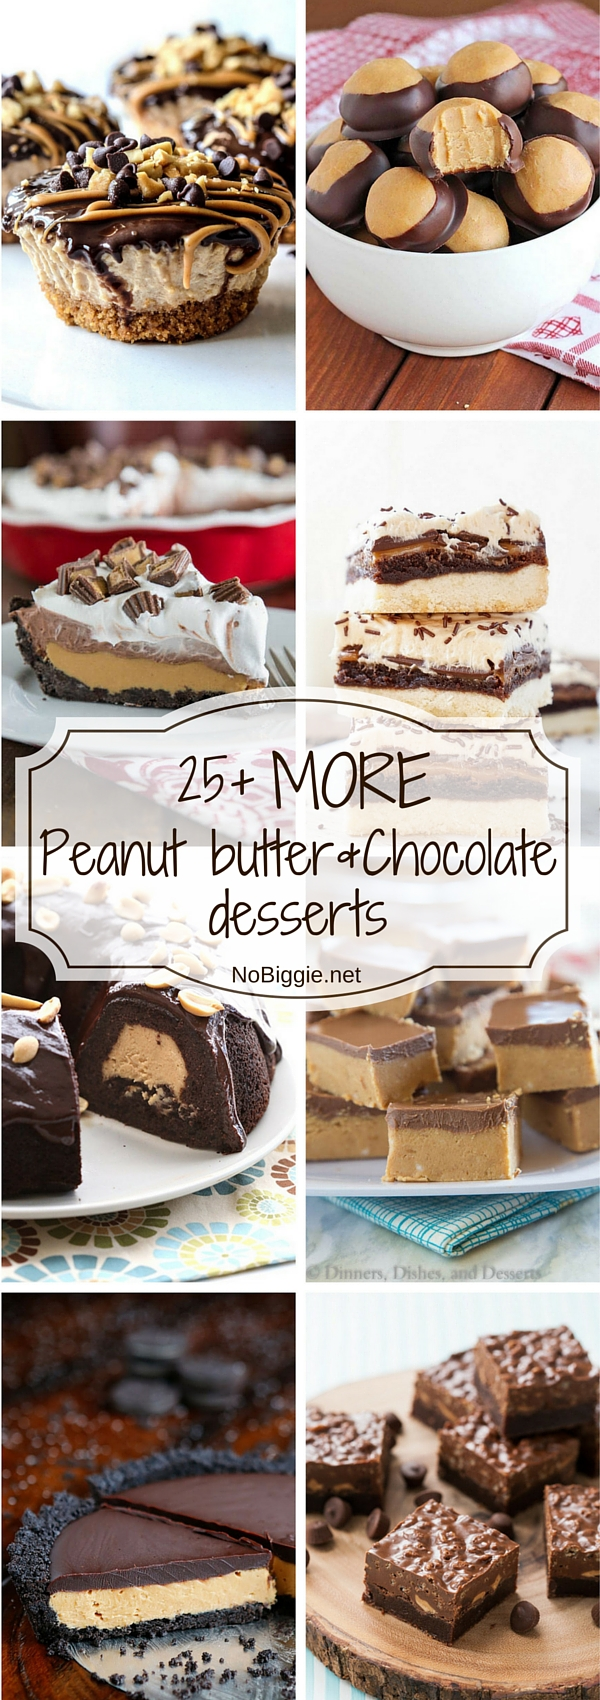 25+ MORE Peanut butter and Chocolate desserts | NoBiggie.net